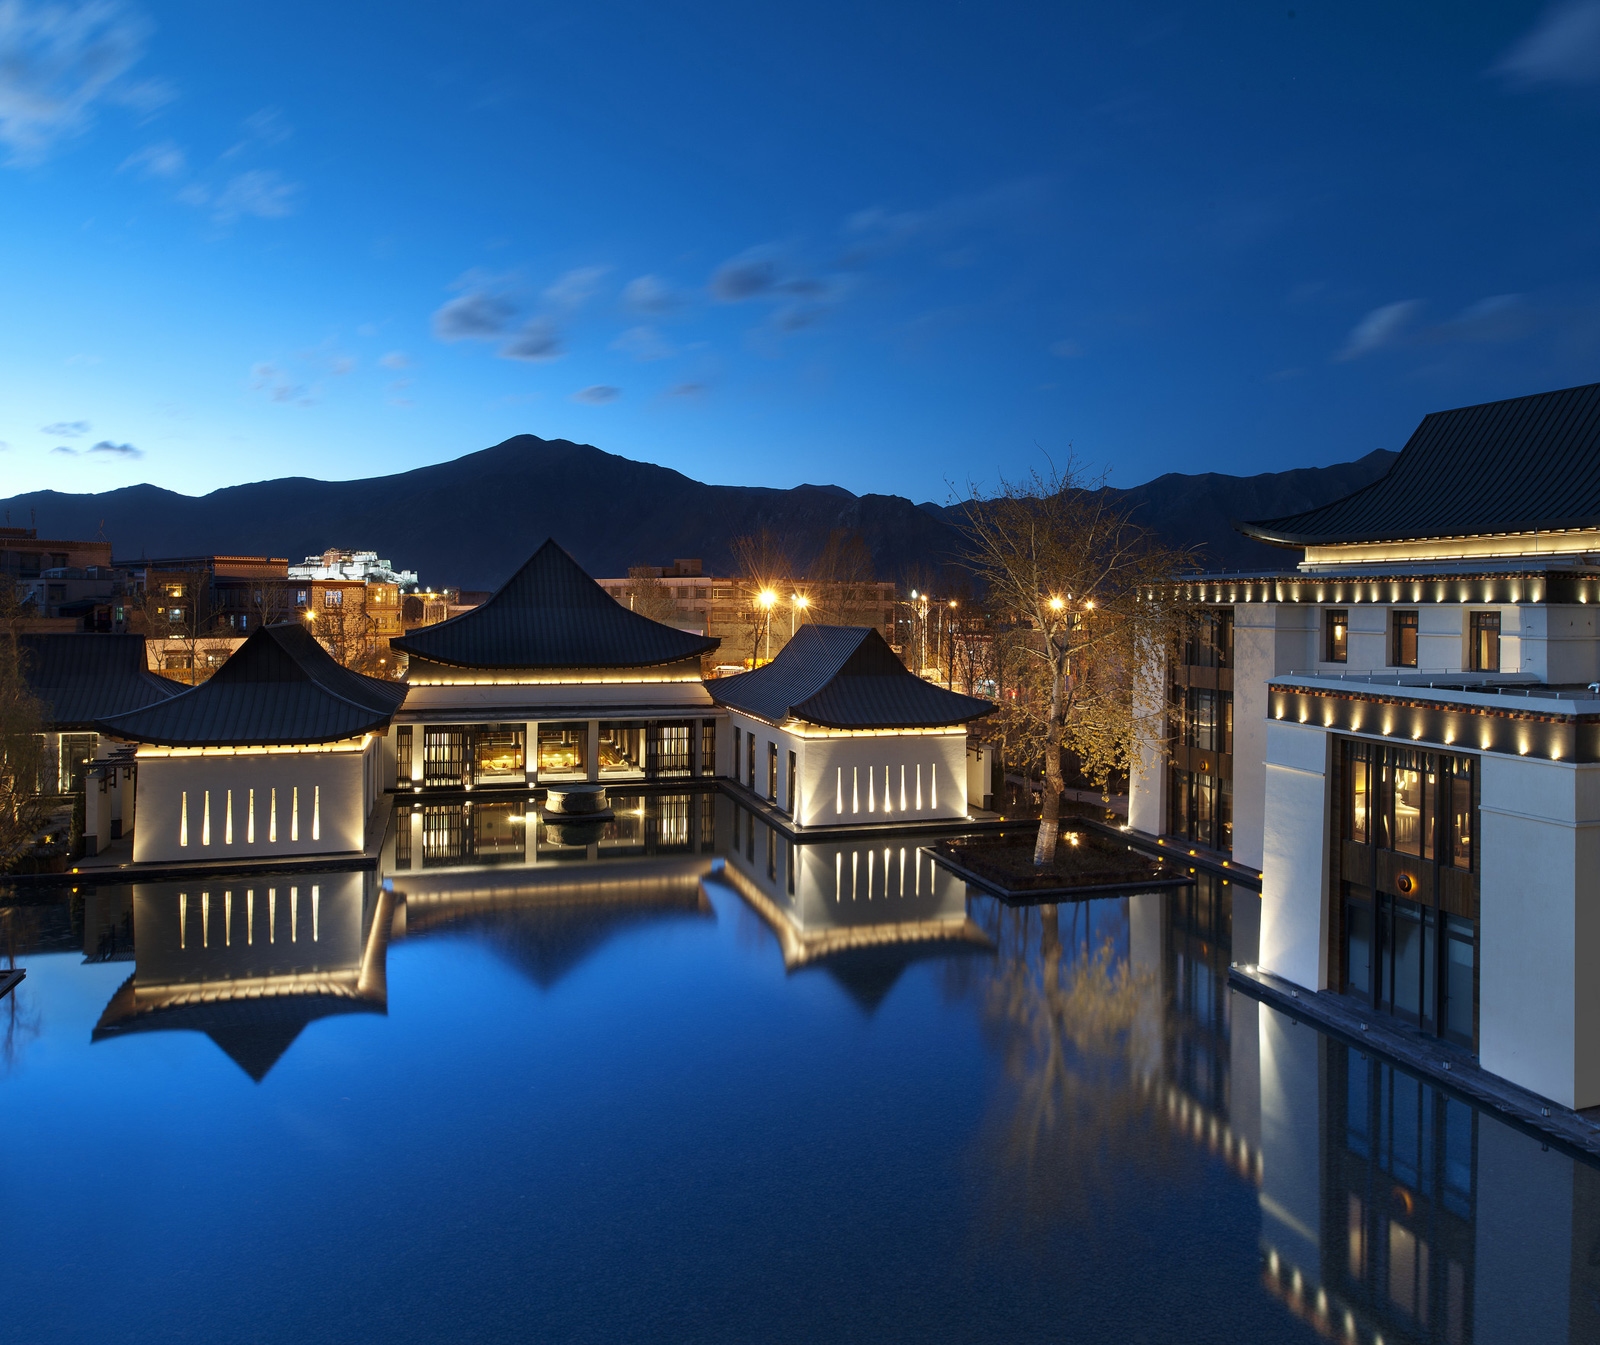 St regis lhasa tibet 39 s first five star hotel extravaganzi for Luxury hotel accommodation